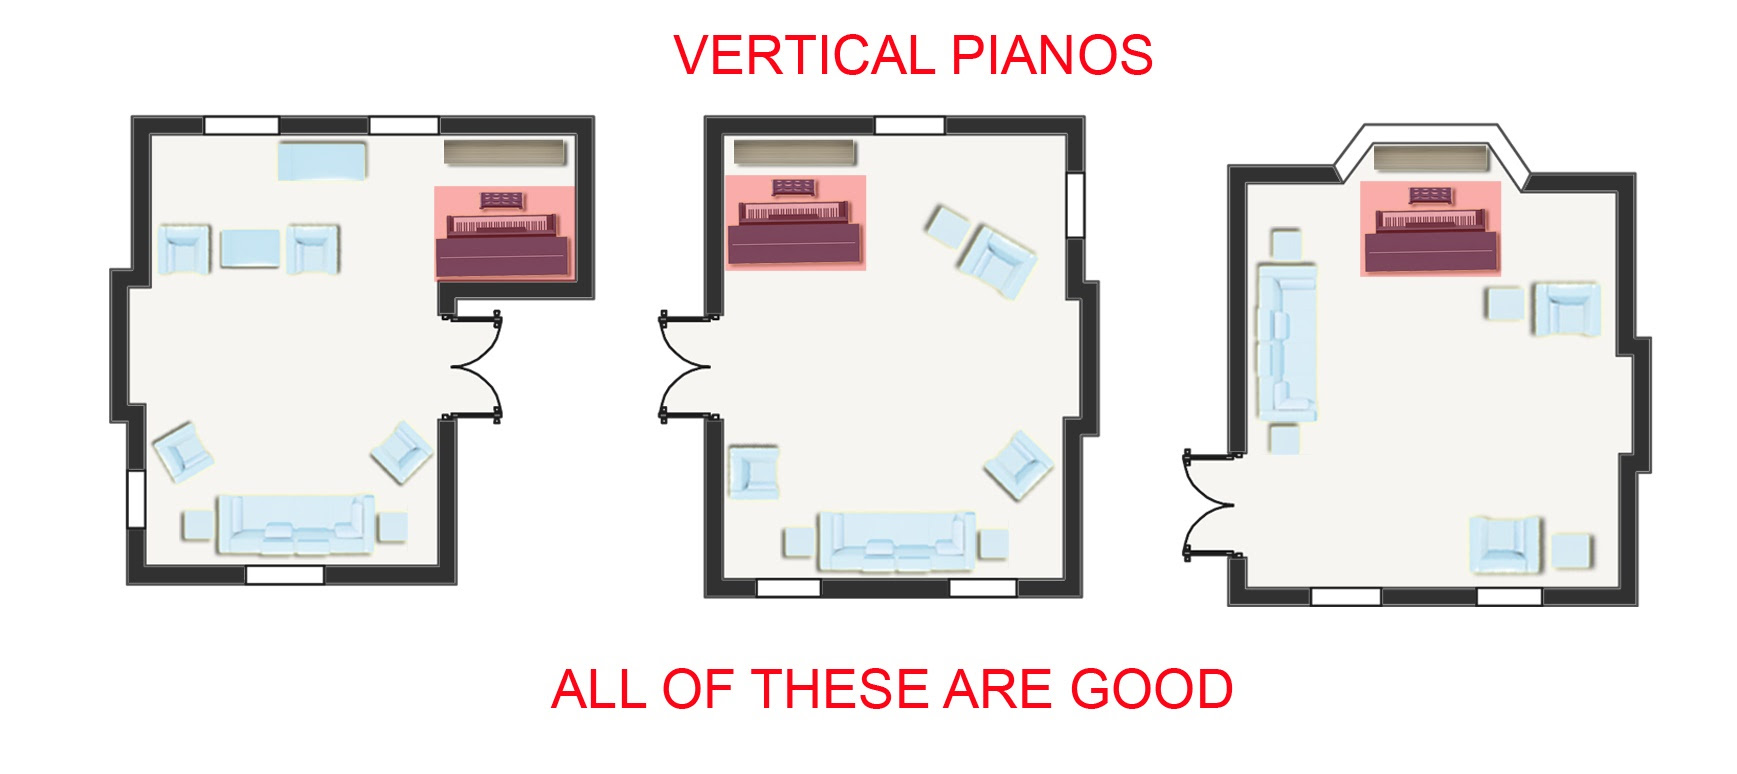 upright piano room placement good examples